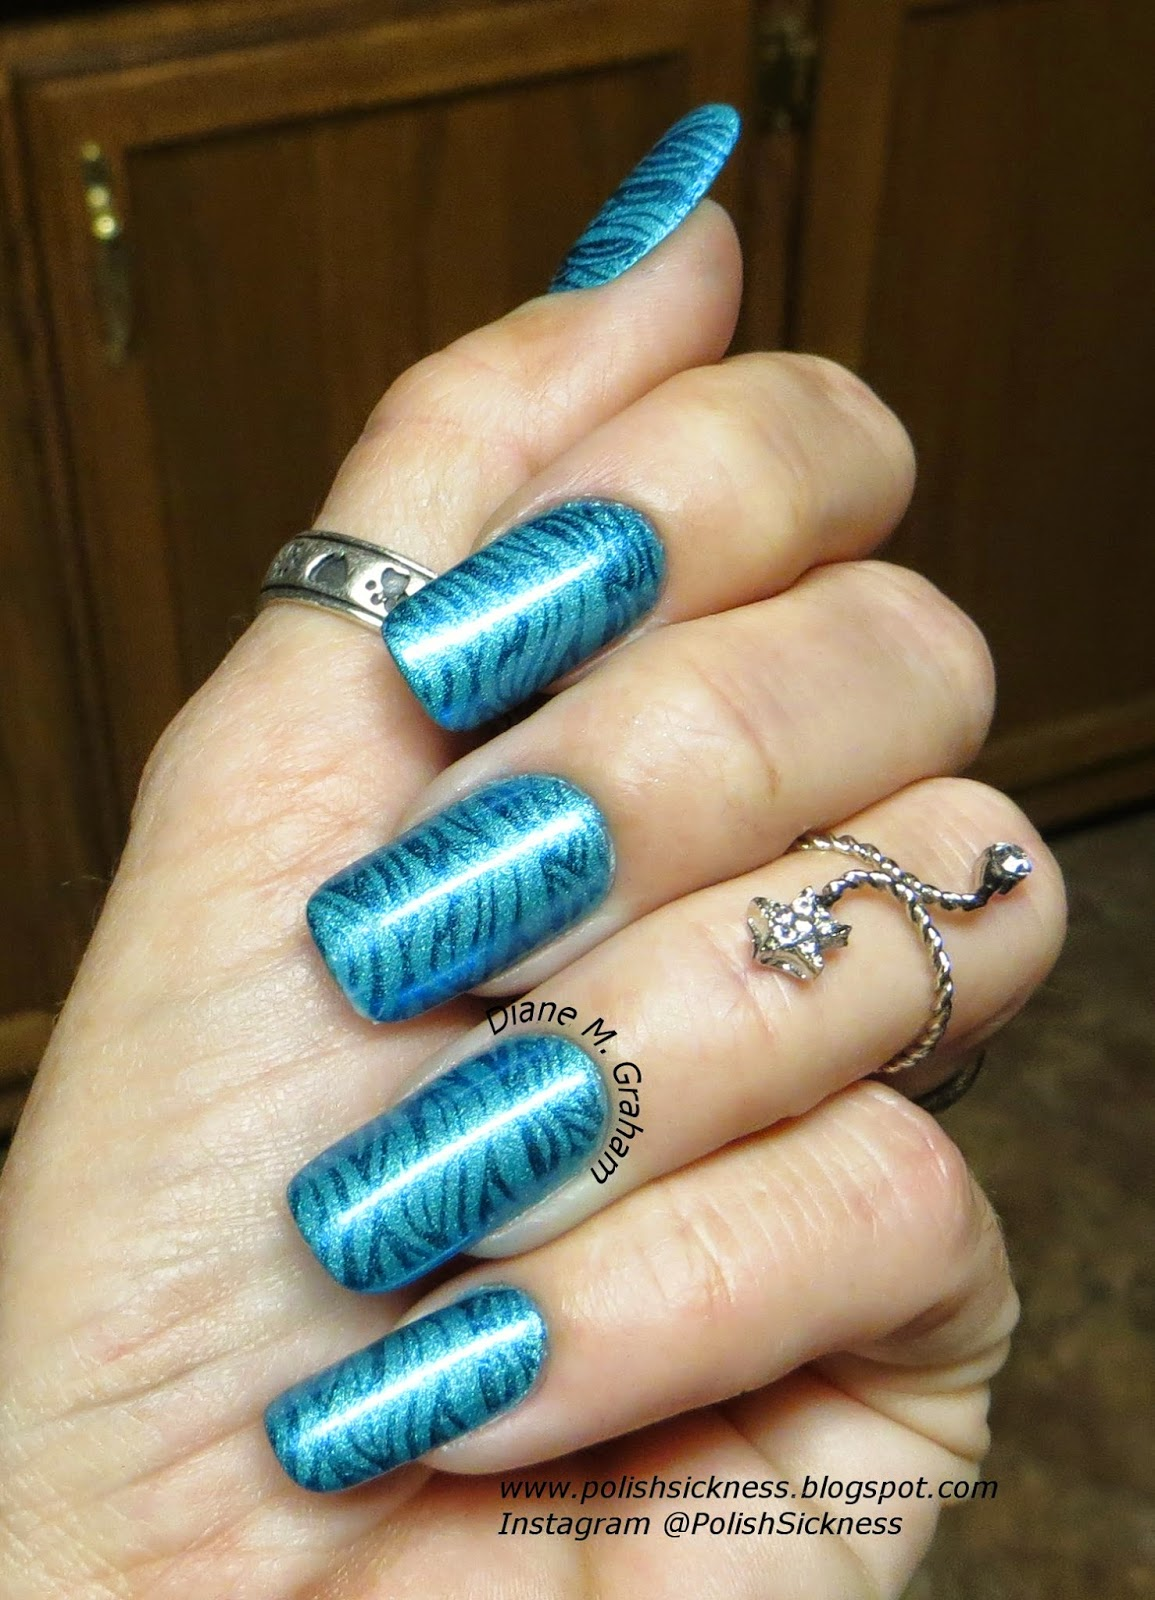 Sally Hansen Satin Glam Teal Tulle, Orly Sweet Peacock, MoYou Sailor 04 stamp